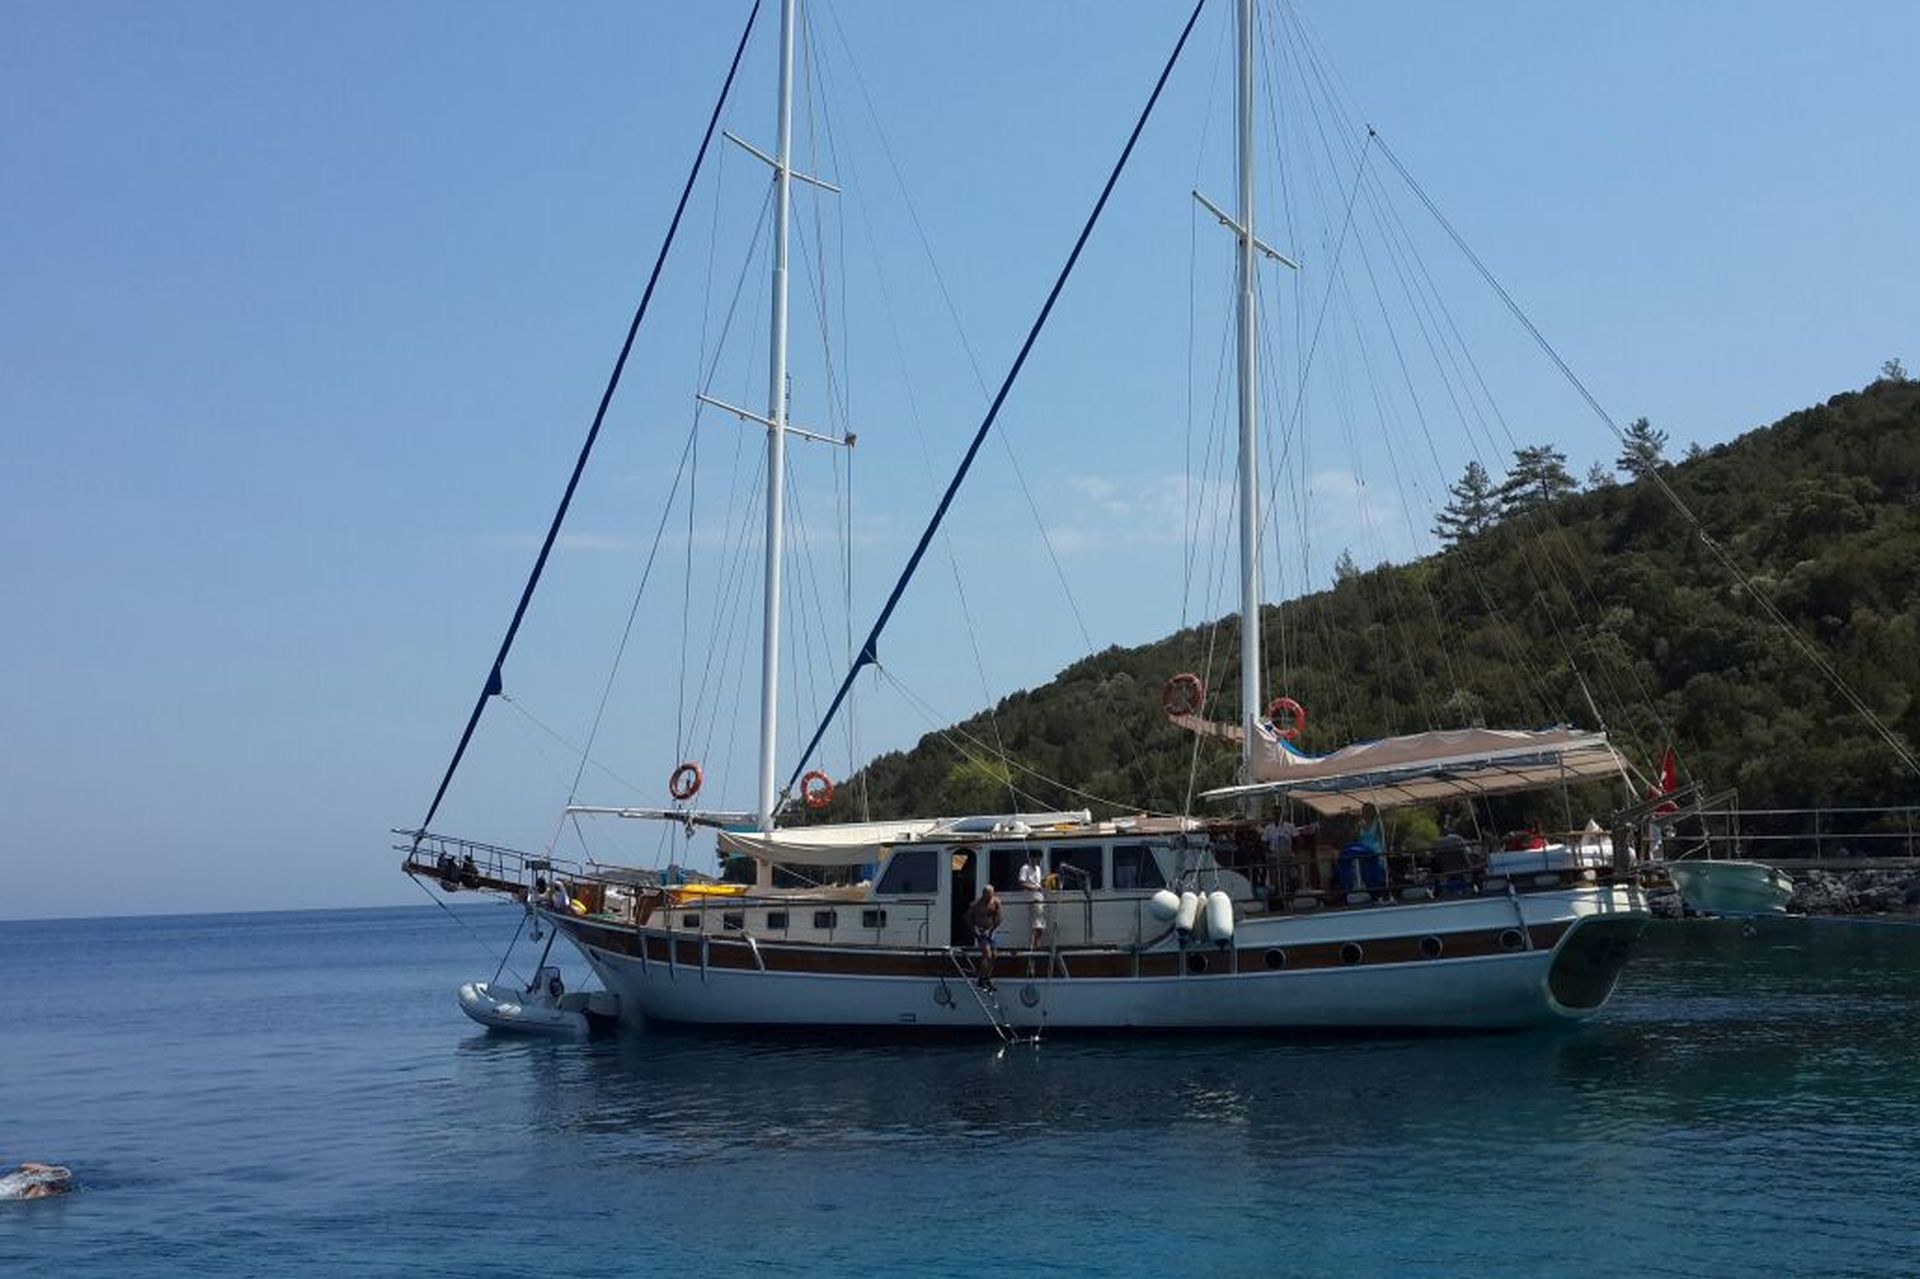 Tufan 5 gulet, light tours yachts fethiye blue cruise trip,Light Tours Blue Cruise, Gulet Charter, Yacht Charter,Bodrum Yachting 2748